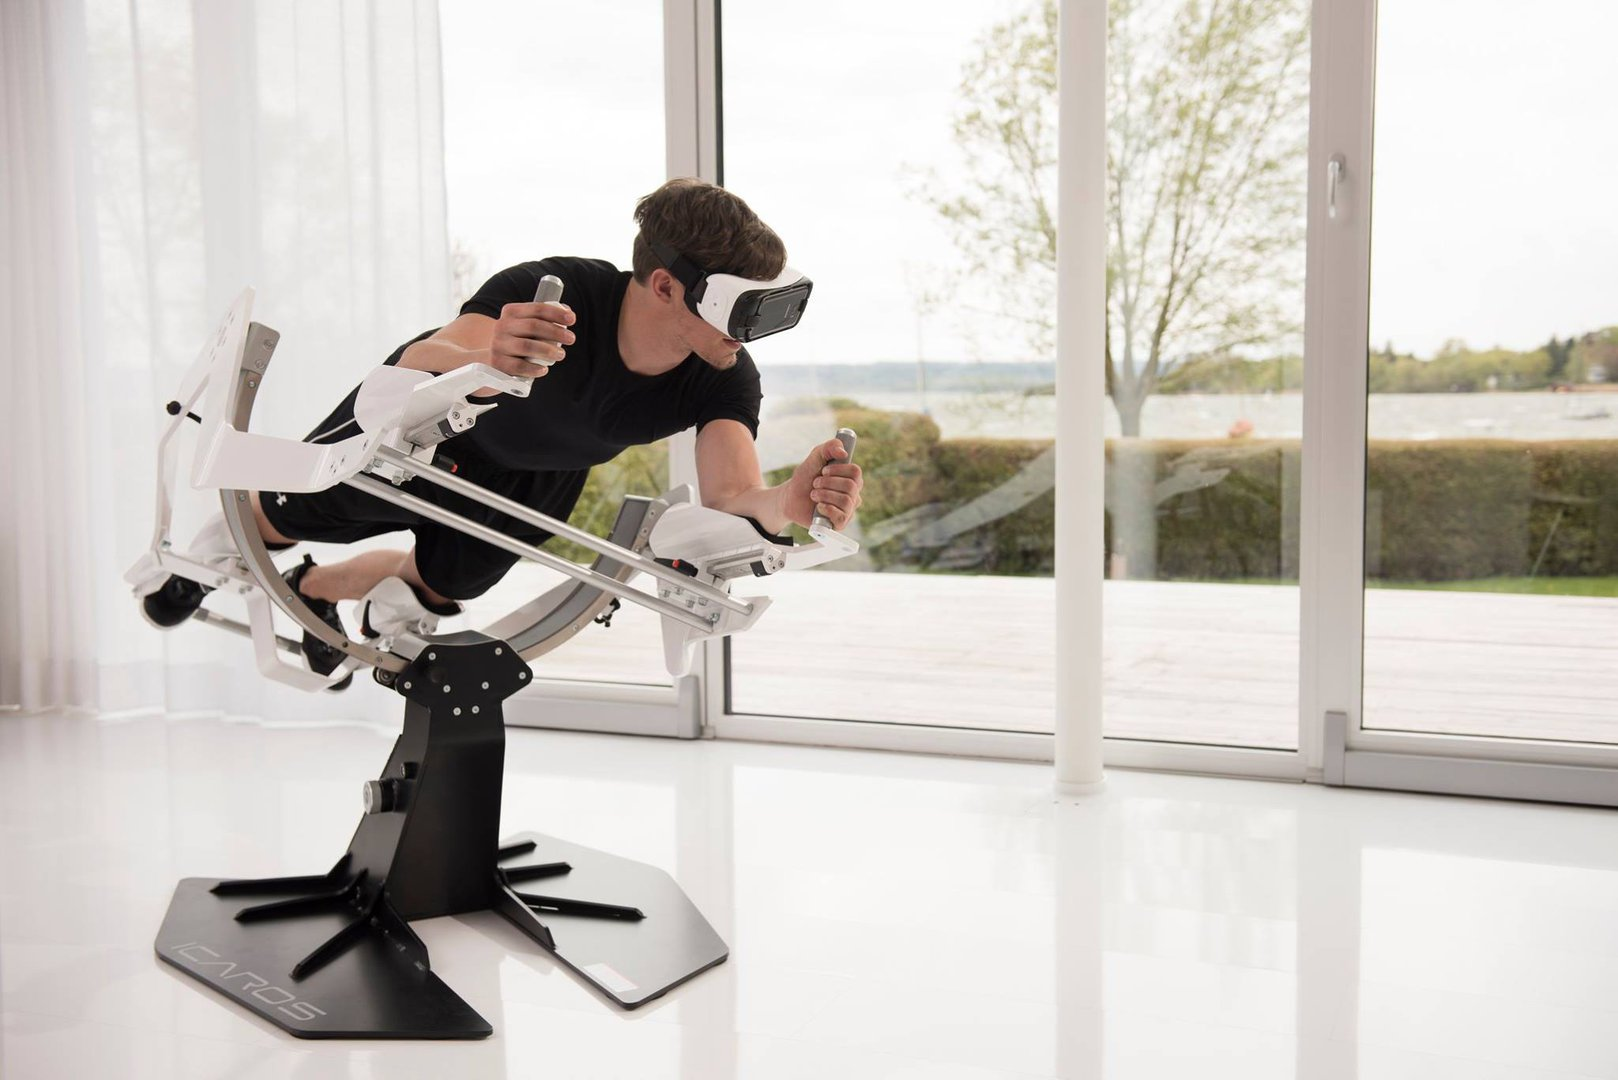 driving simulator chair office high back the future of staying fit: see icaros active vr experience - living plugin-magazine.com